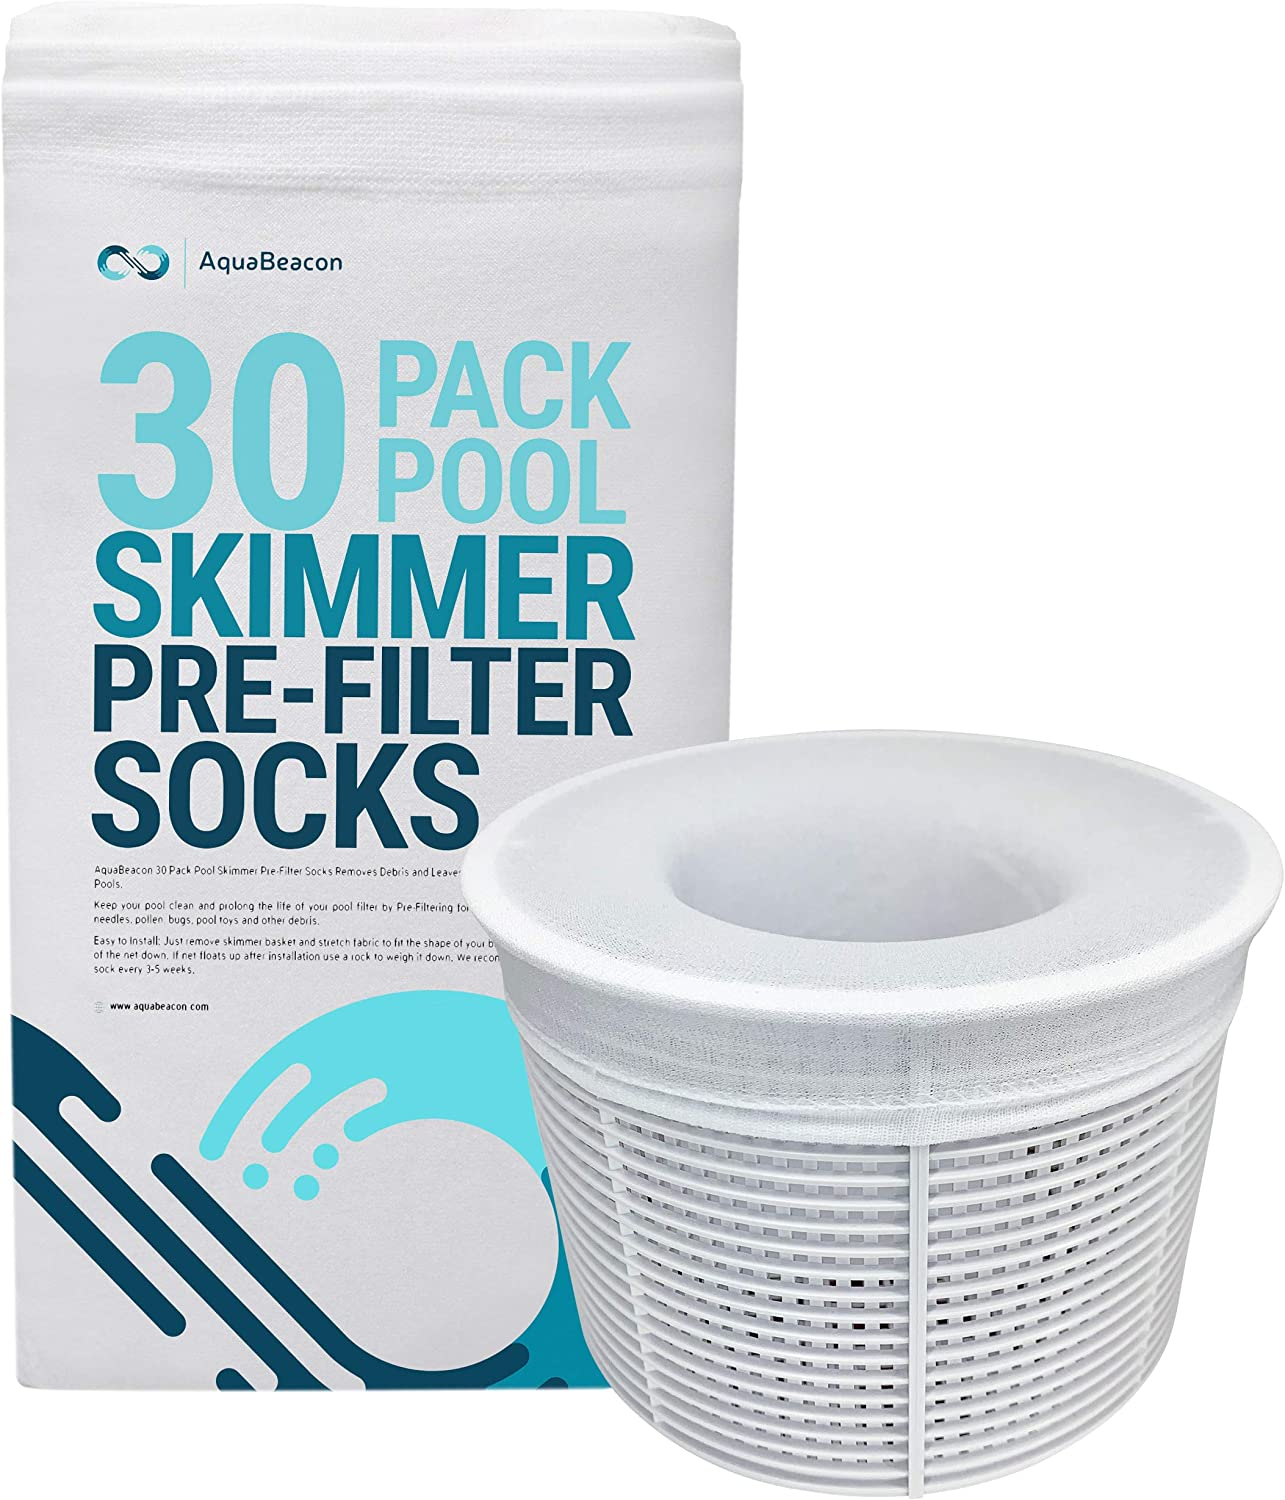 Aquabeacon Premium Pool Skimmer Socks Perfect Pool & Spa Savers for Filters, Baskets, and Skimmers (30 Pack)